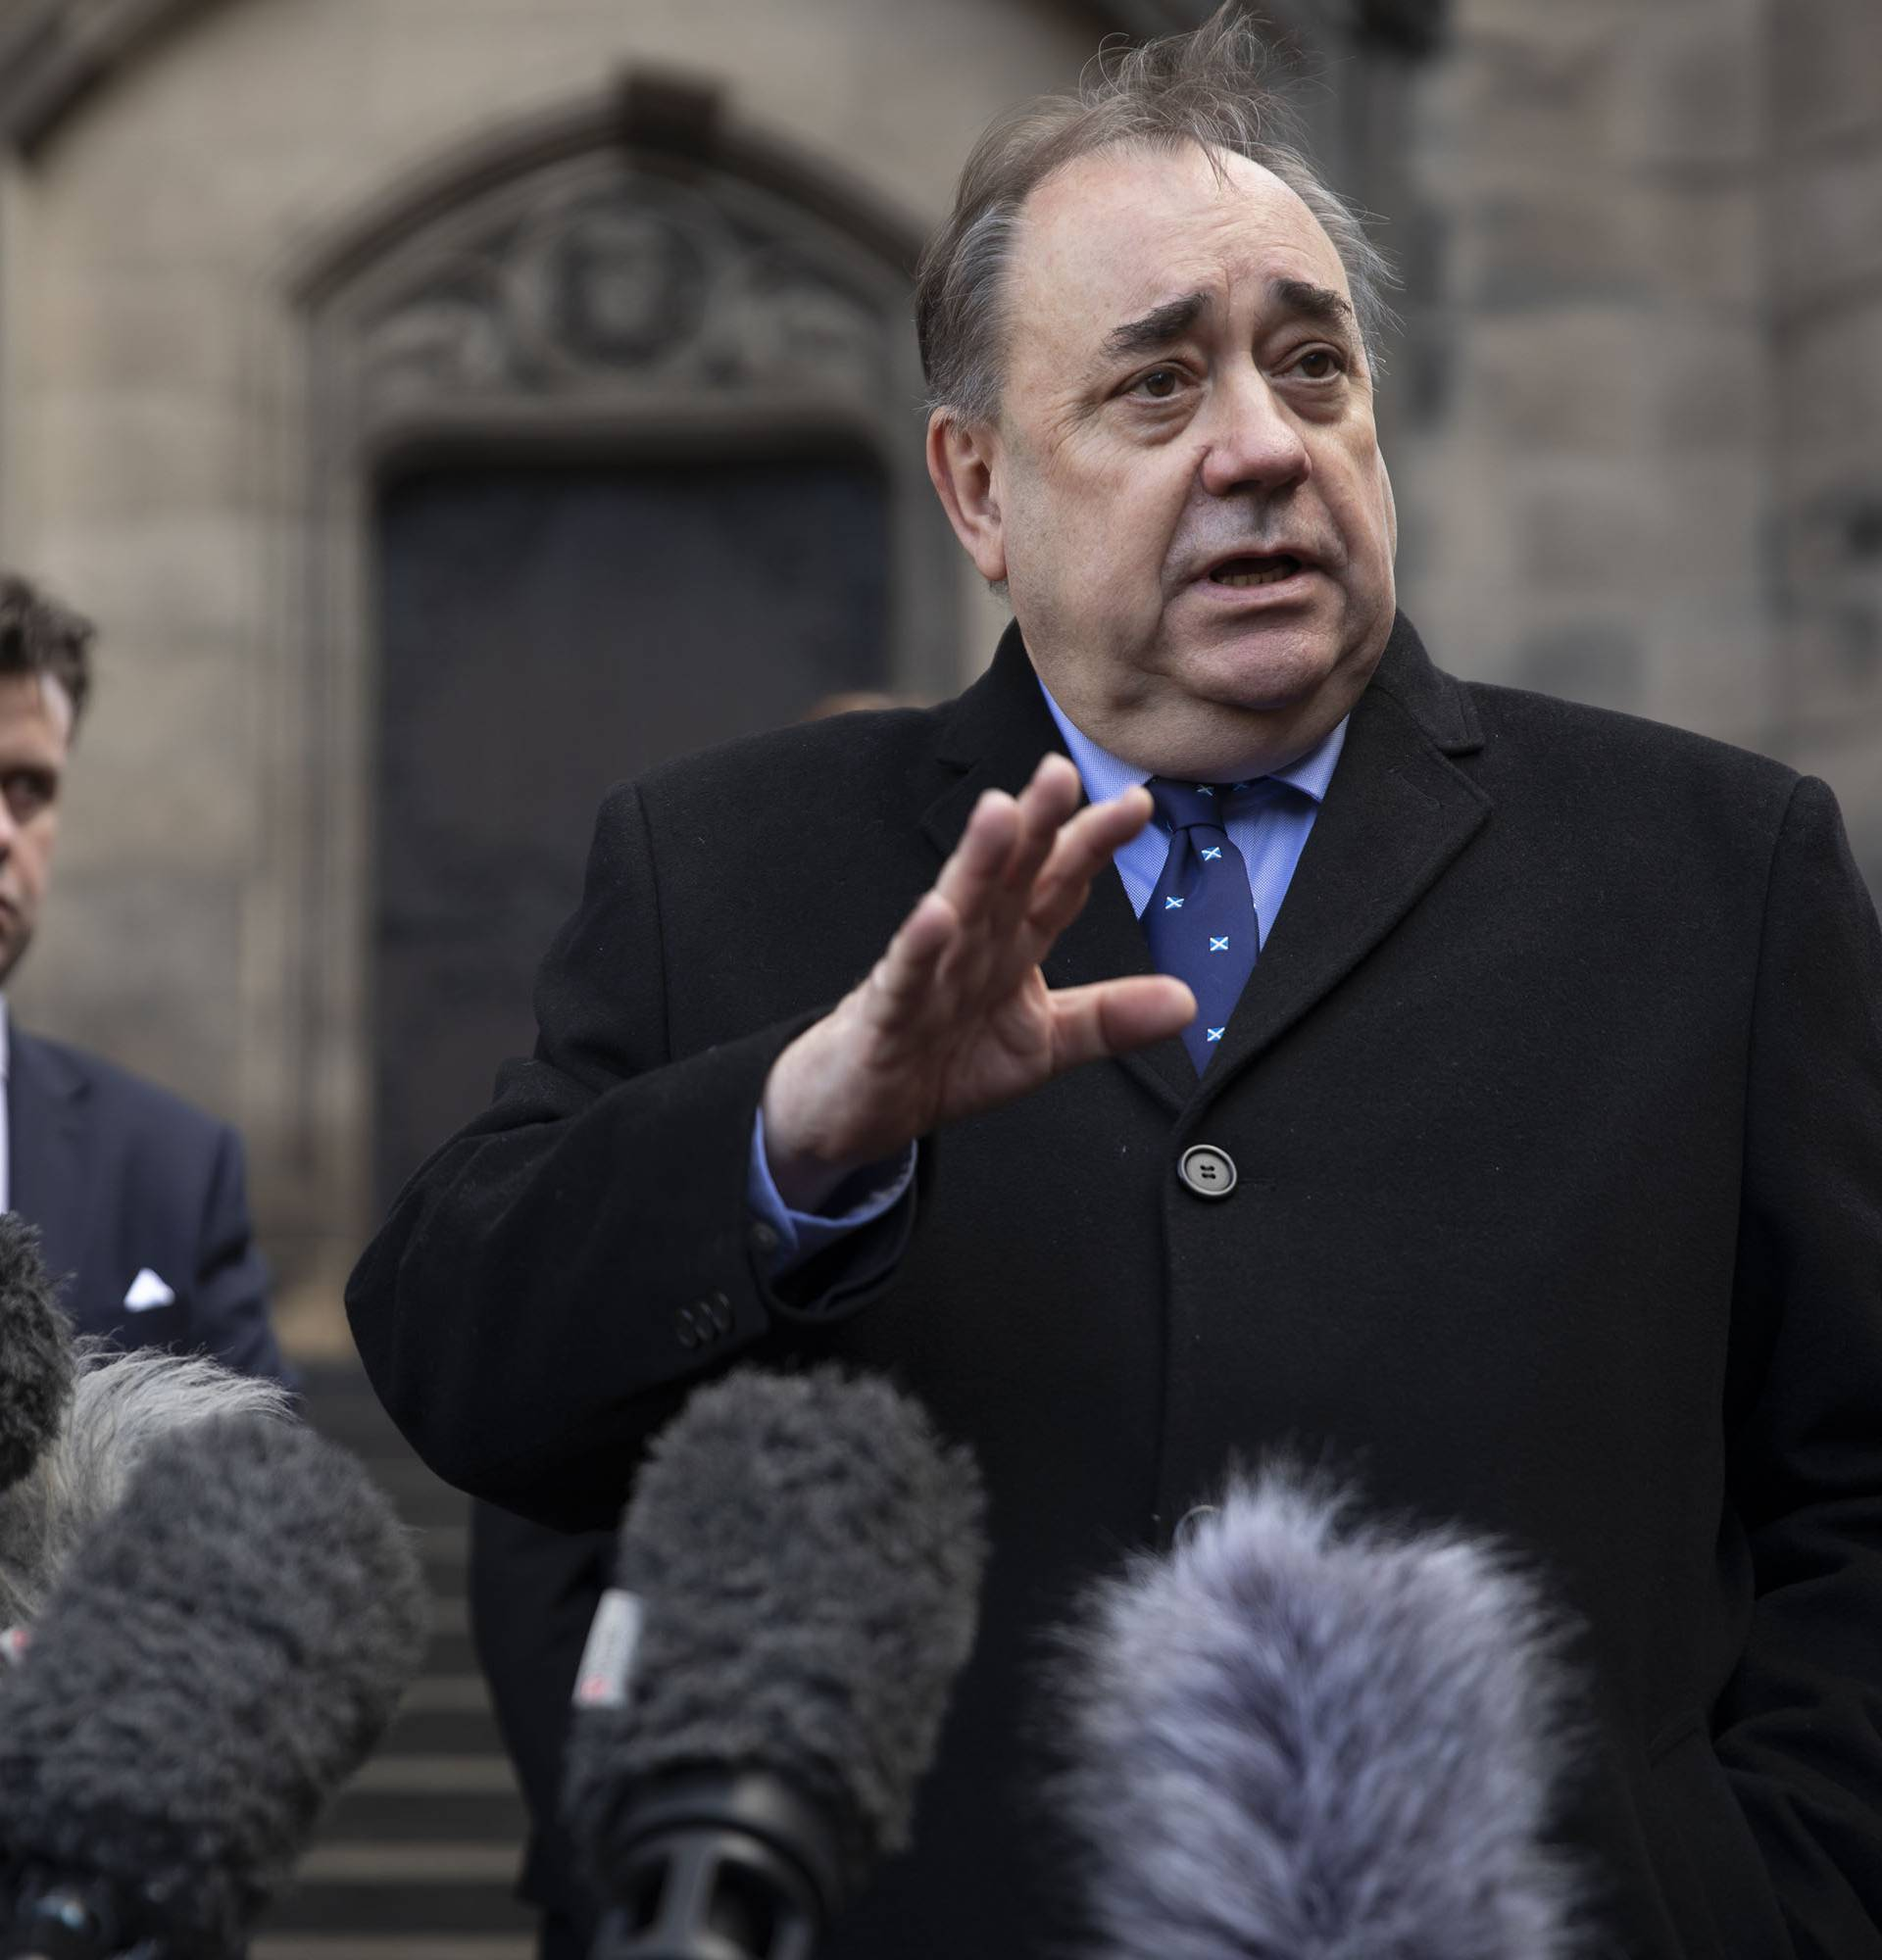 Alex Salmond at Court of Session